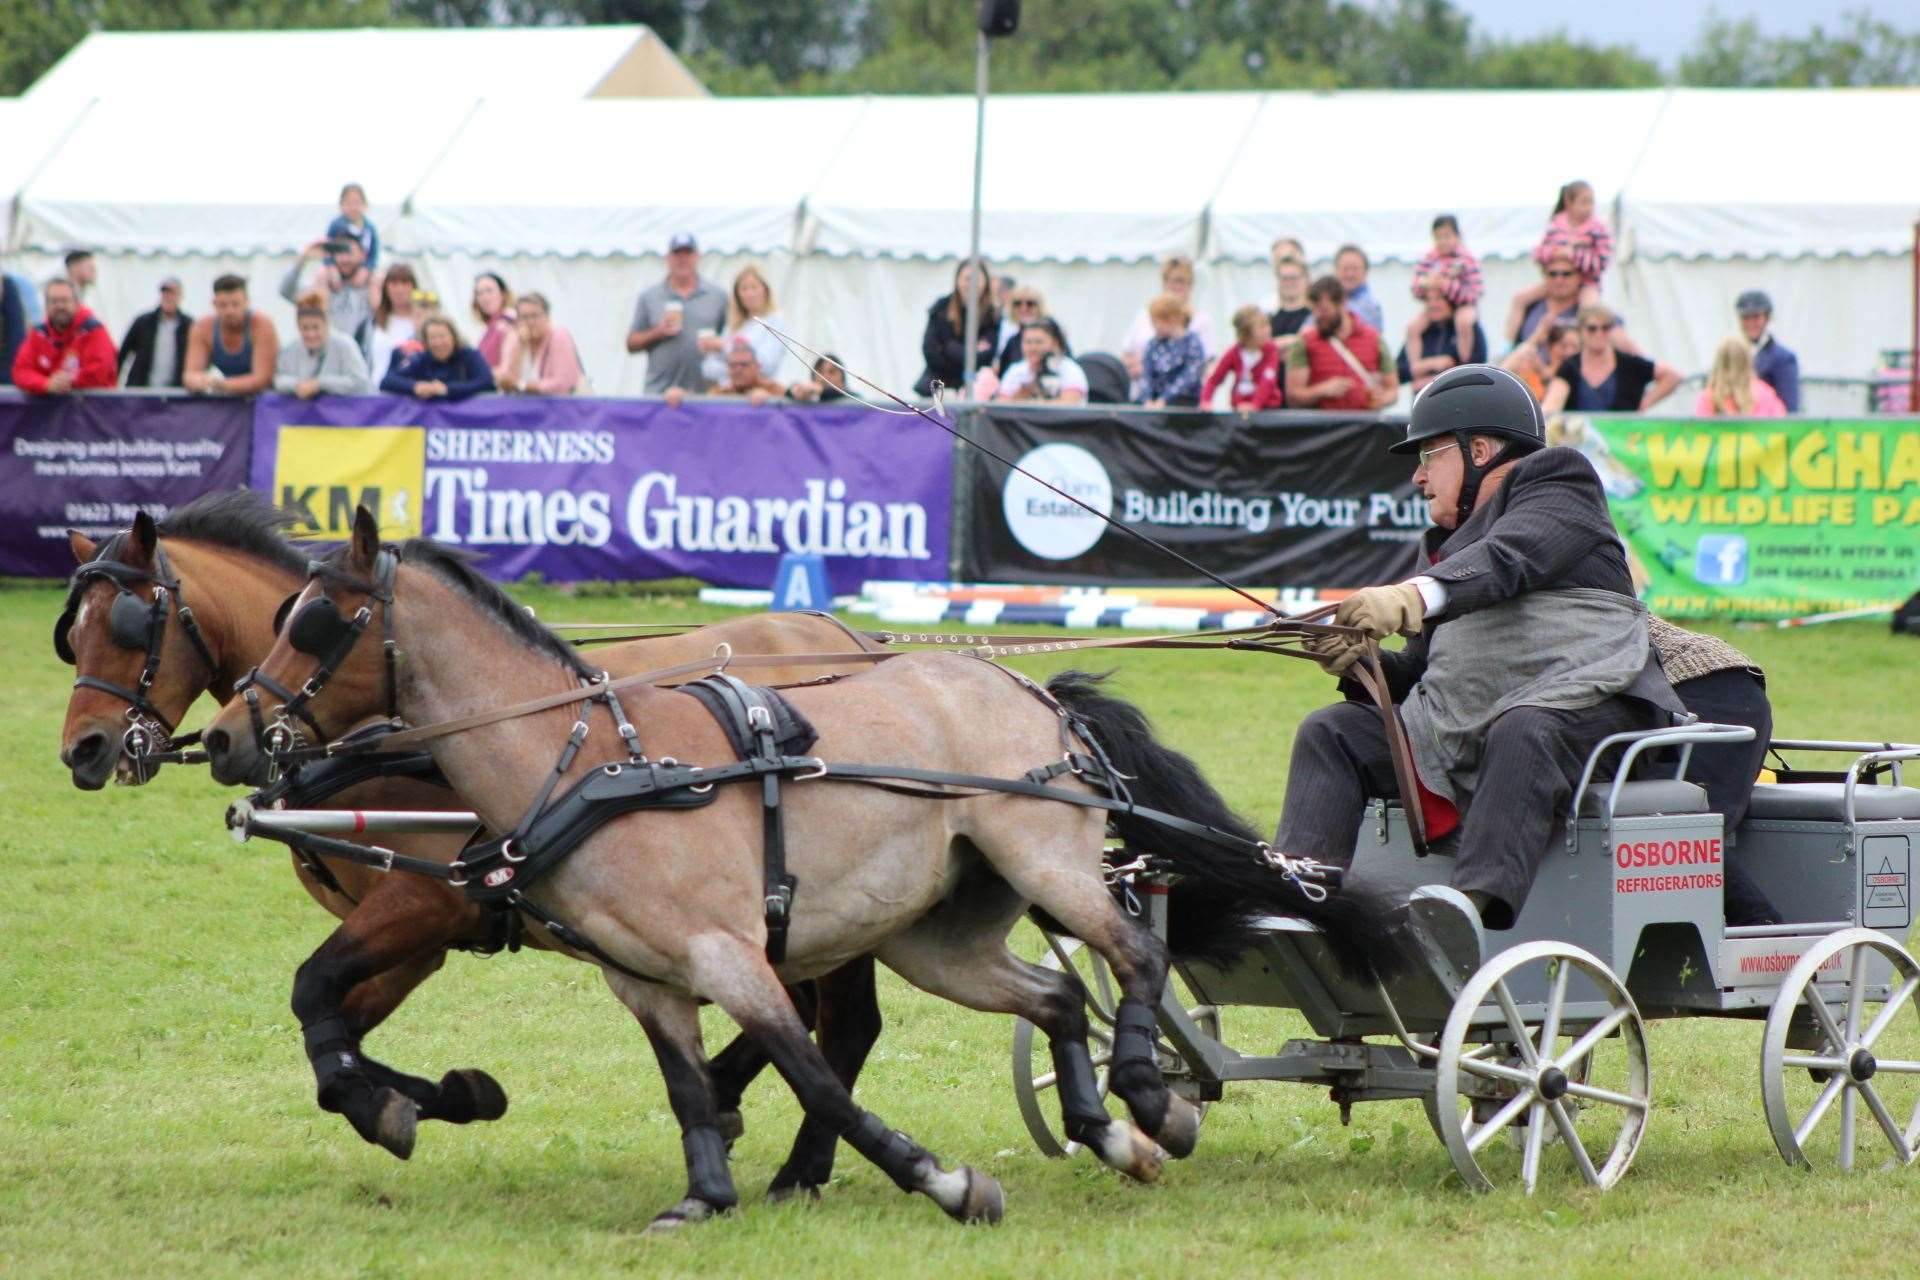 Veteran scurry driver Jeff Osborne, 83, from Bognor Regis and his ponies Twitter and Tweet dash past the Sheerness Times Guardian banner at the Kent County Show (13545728)